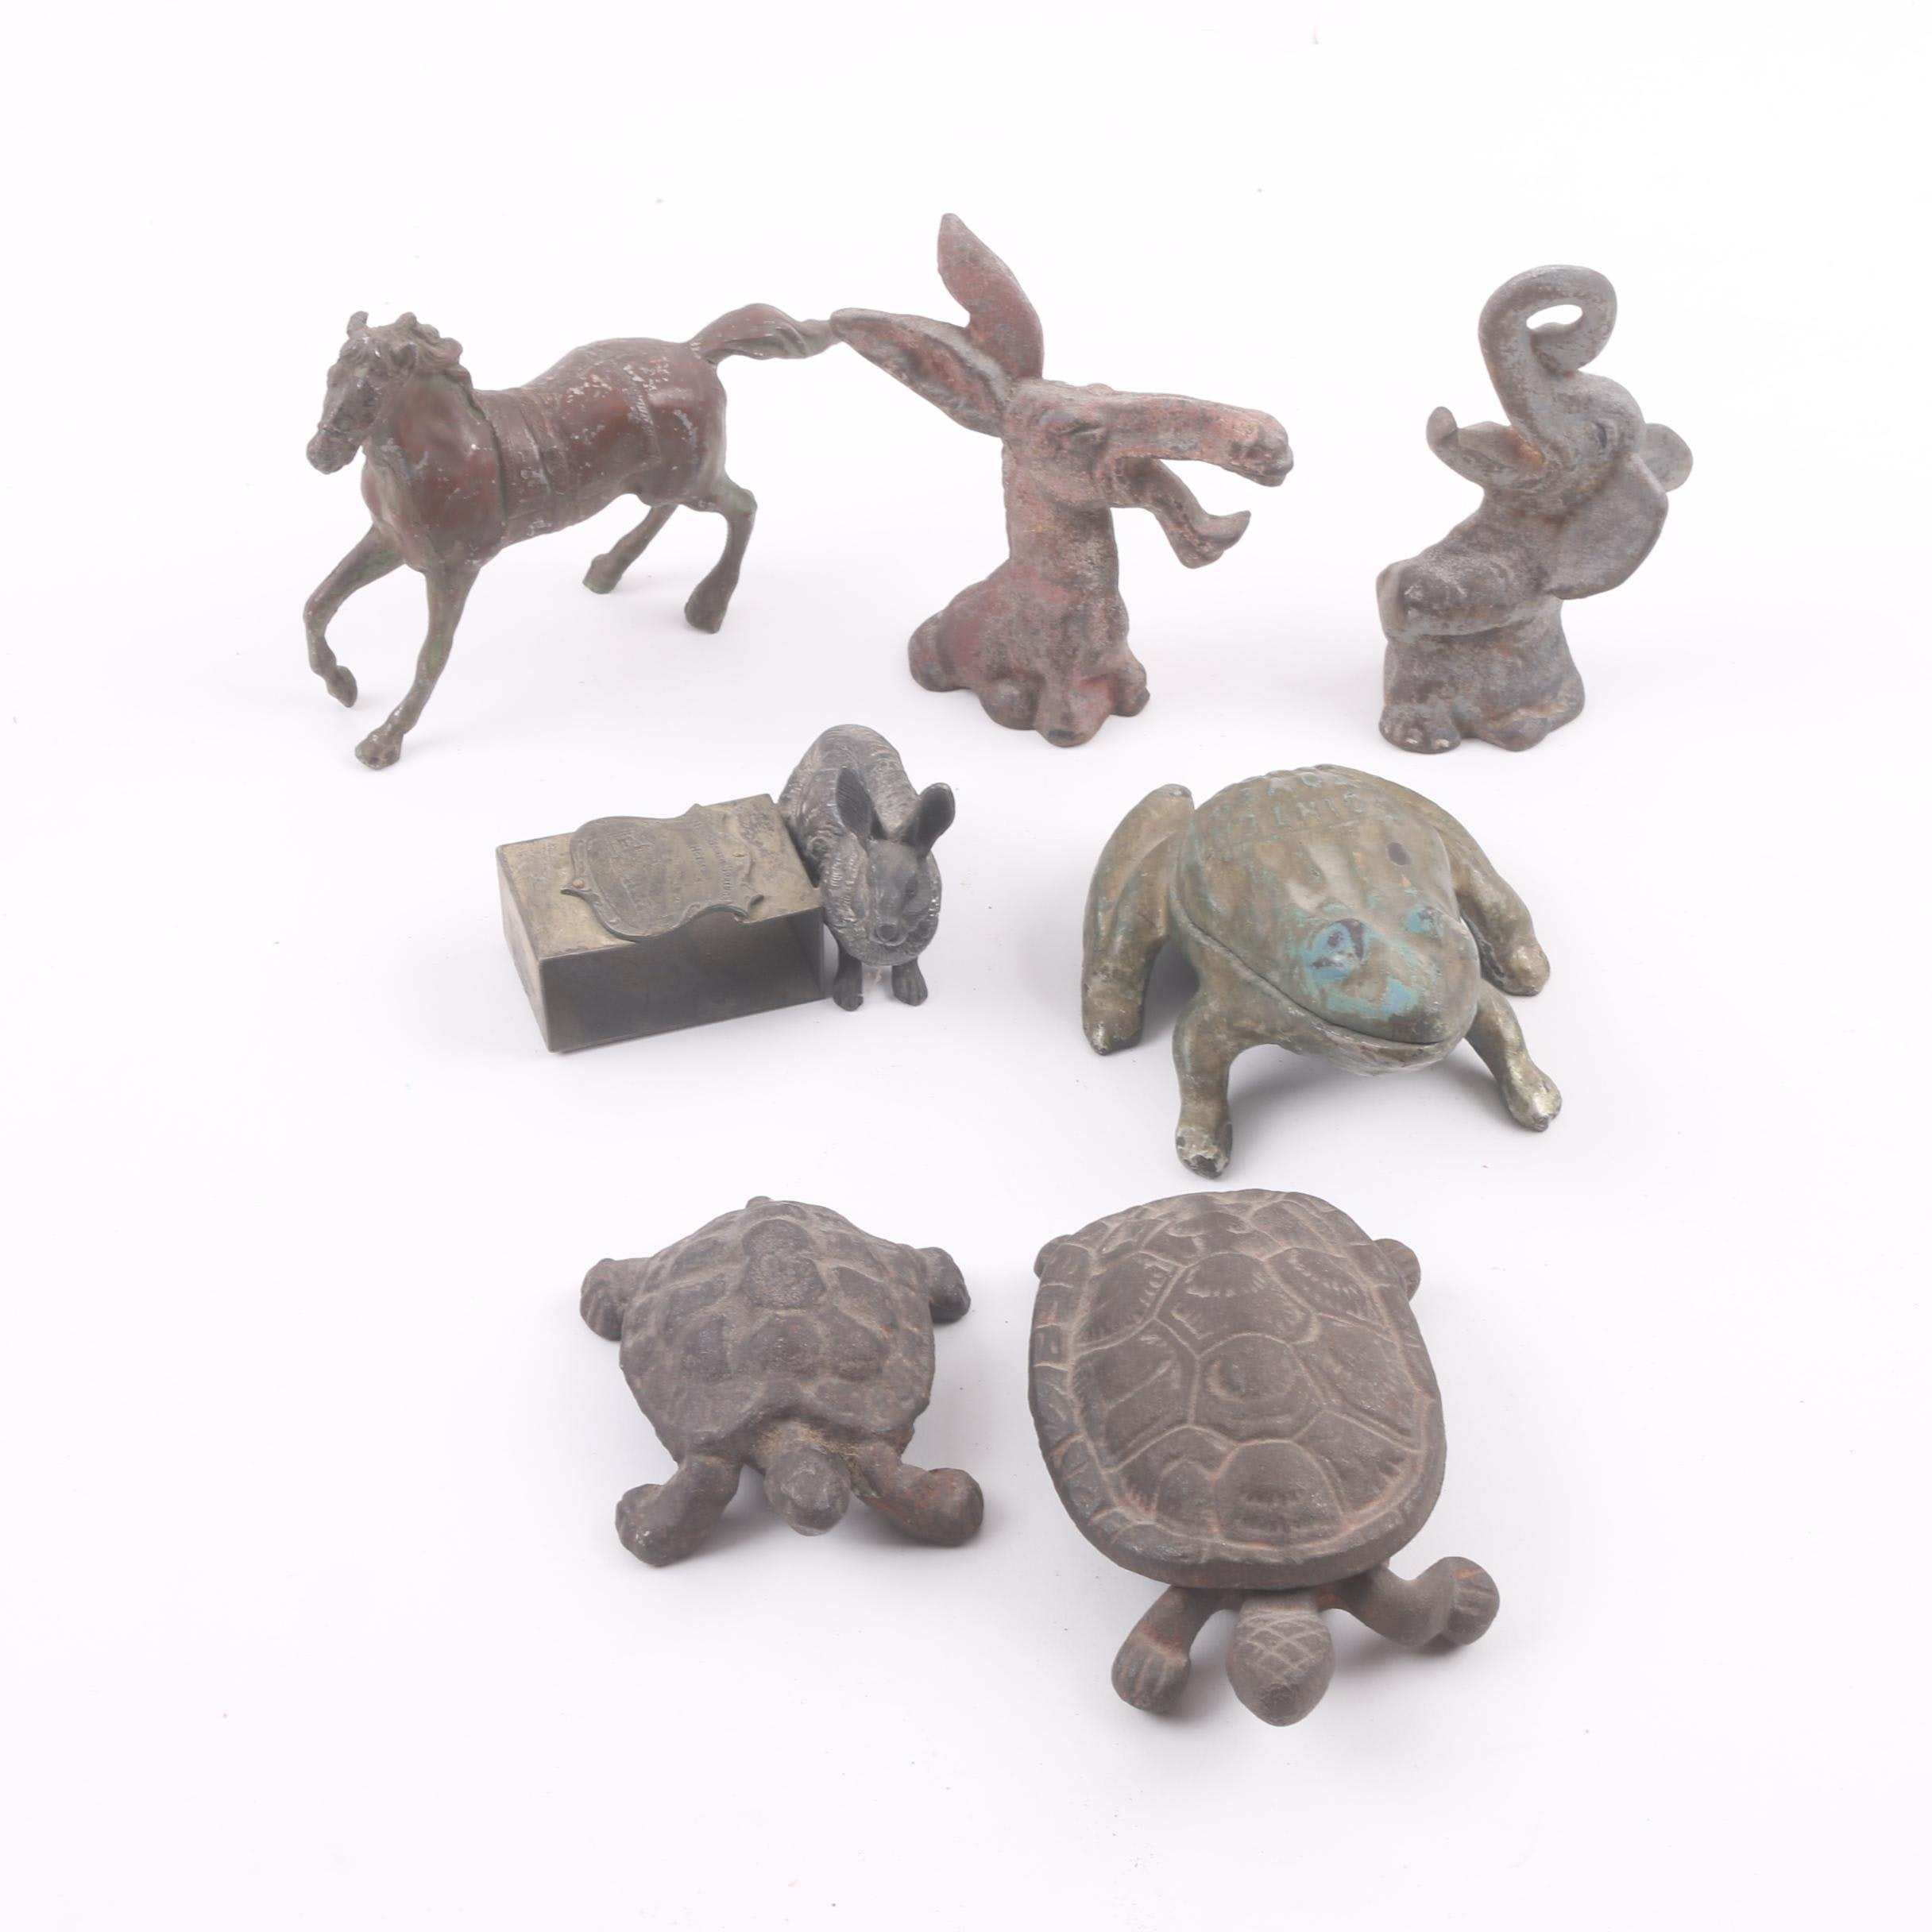 Vintage Cast Iron and Metal Animal Themed Figurines, Match Safe, Frog Box